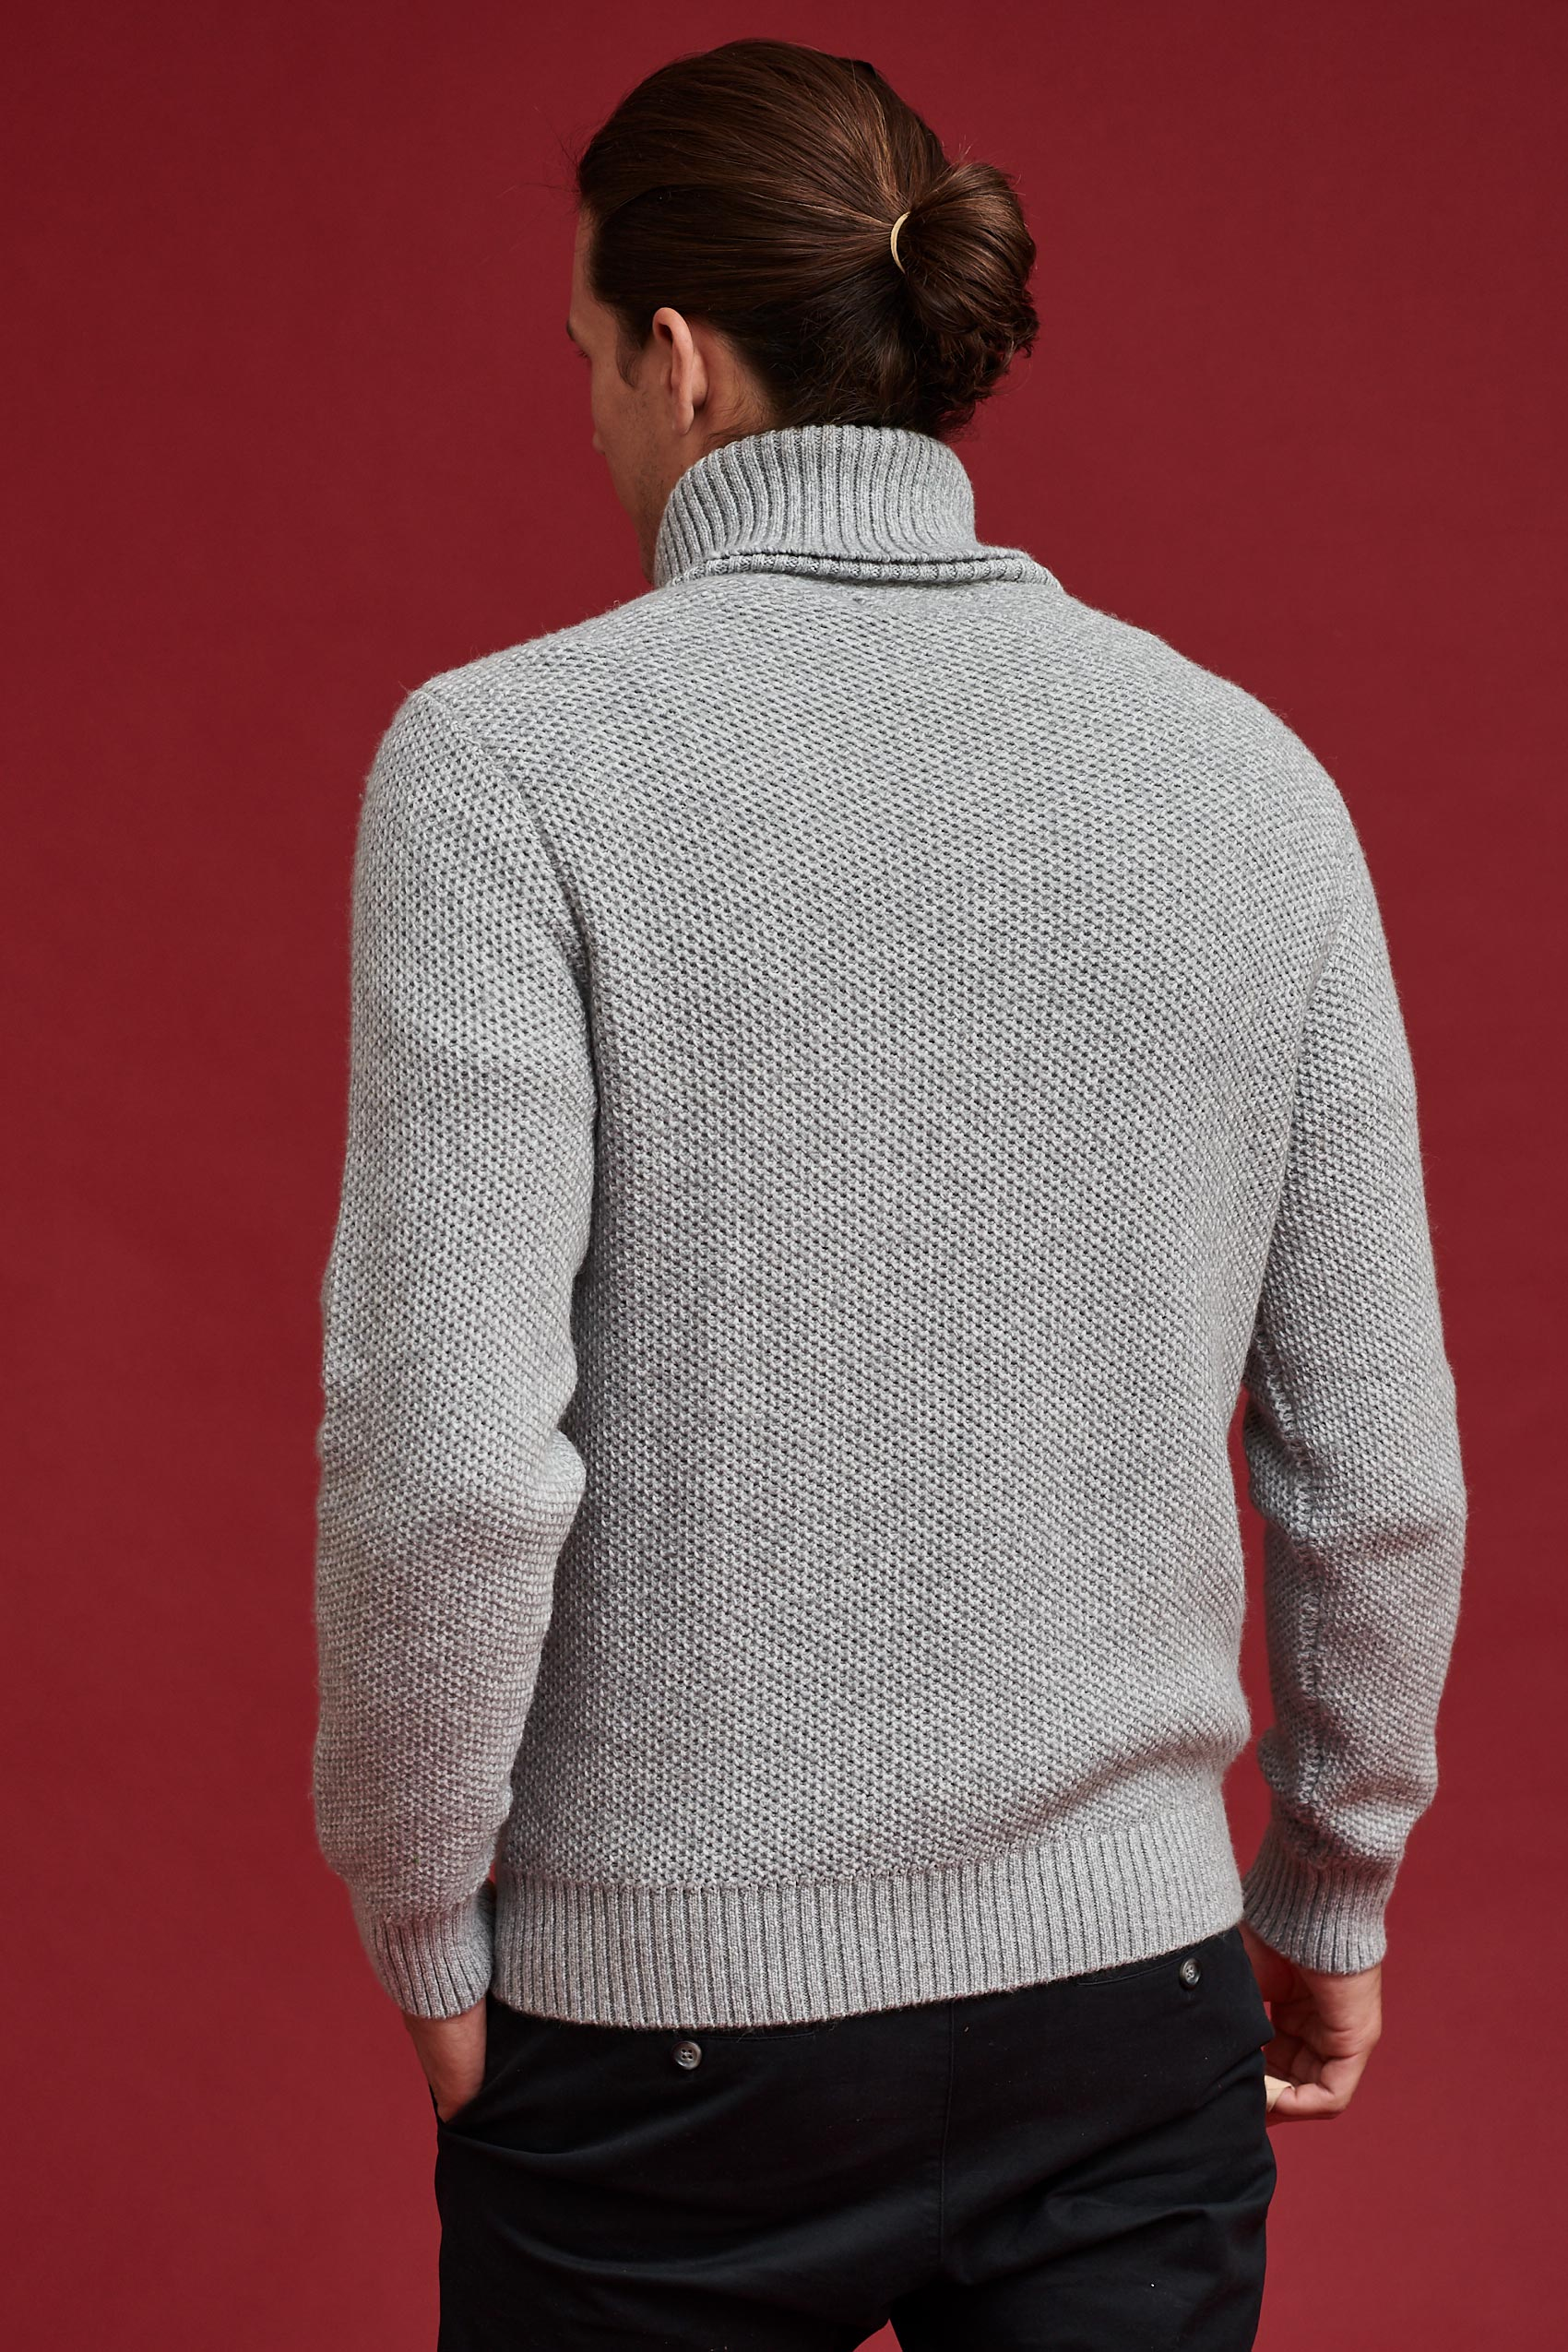 penguin_rollneck-sweater_59-13-2020__picture-14738